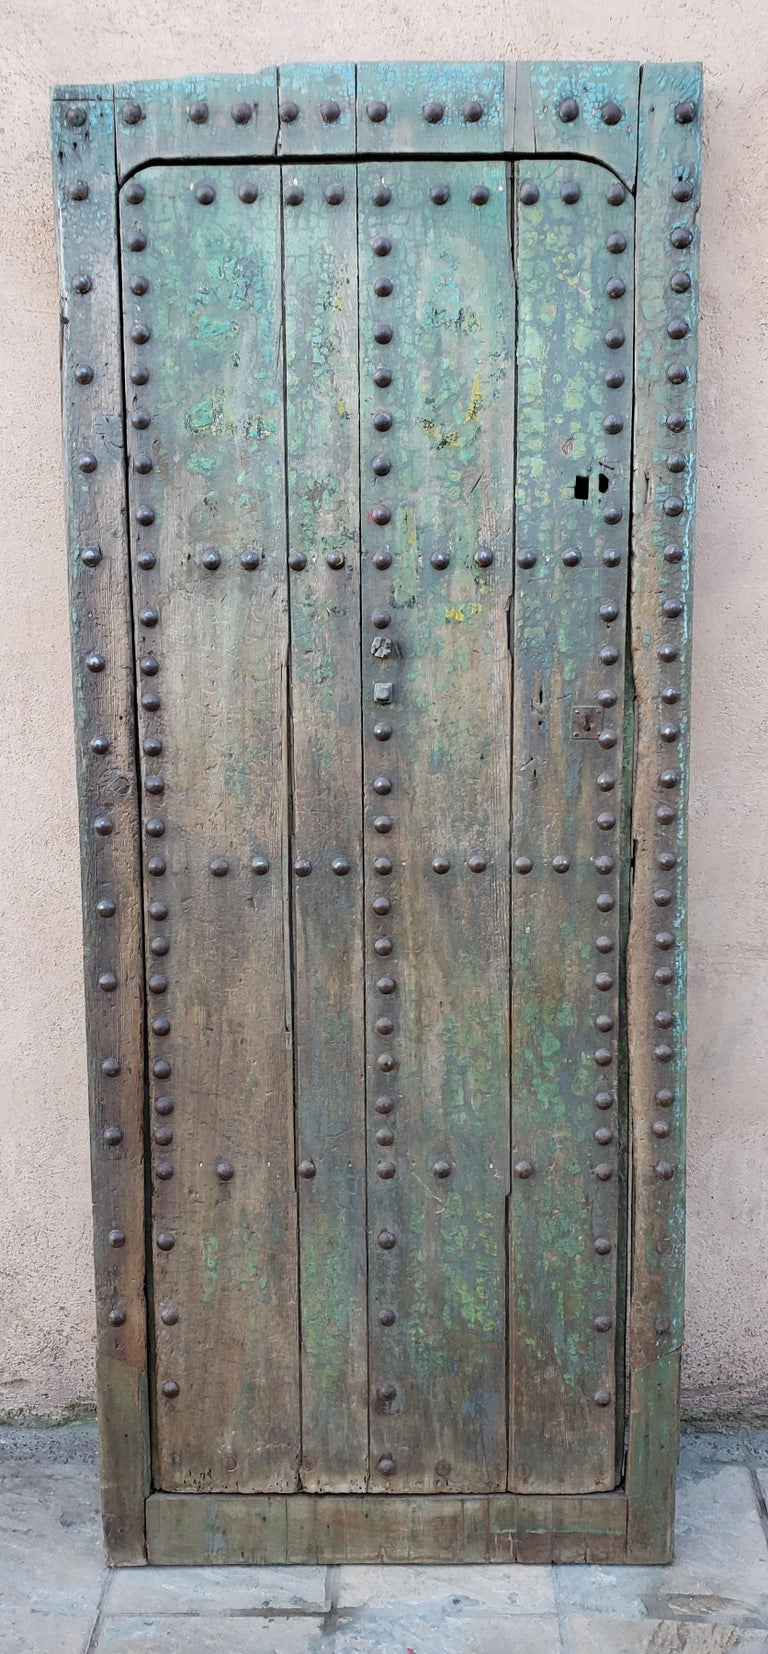 Another amazing single panel Moroccan door measuring approximately 84